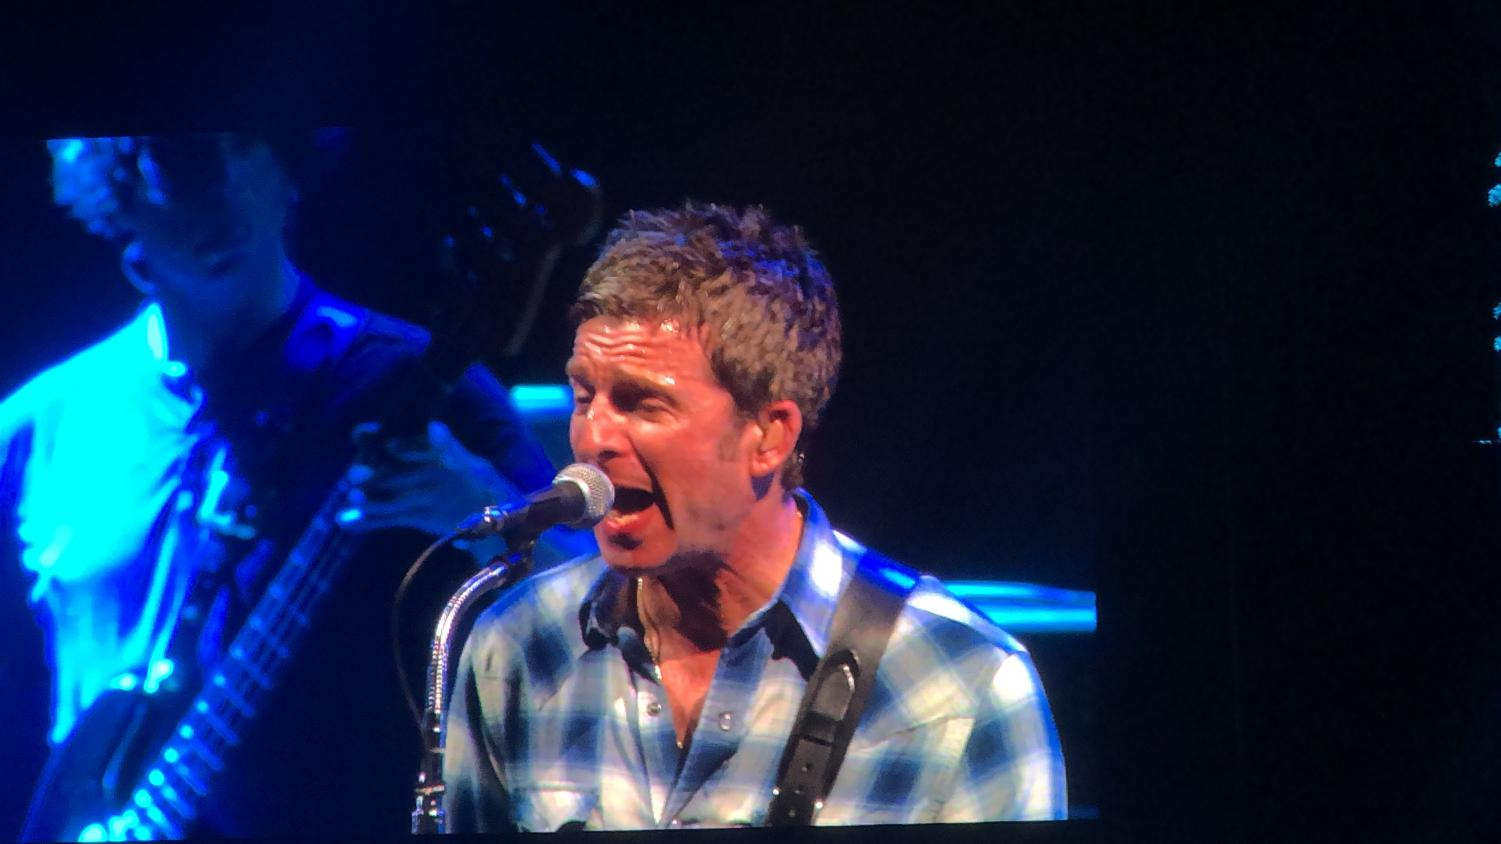 Noel+Gallagher+singing+%22Keep+on+reaching%22+from+his+2017+album+%E2%80%98Who+Built+the+Moon%E2%80%99+